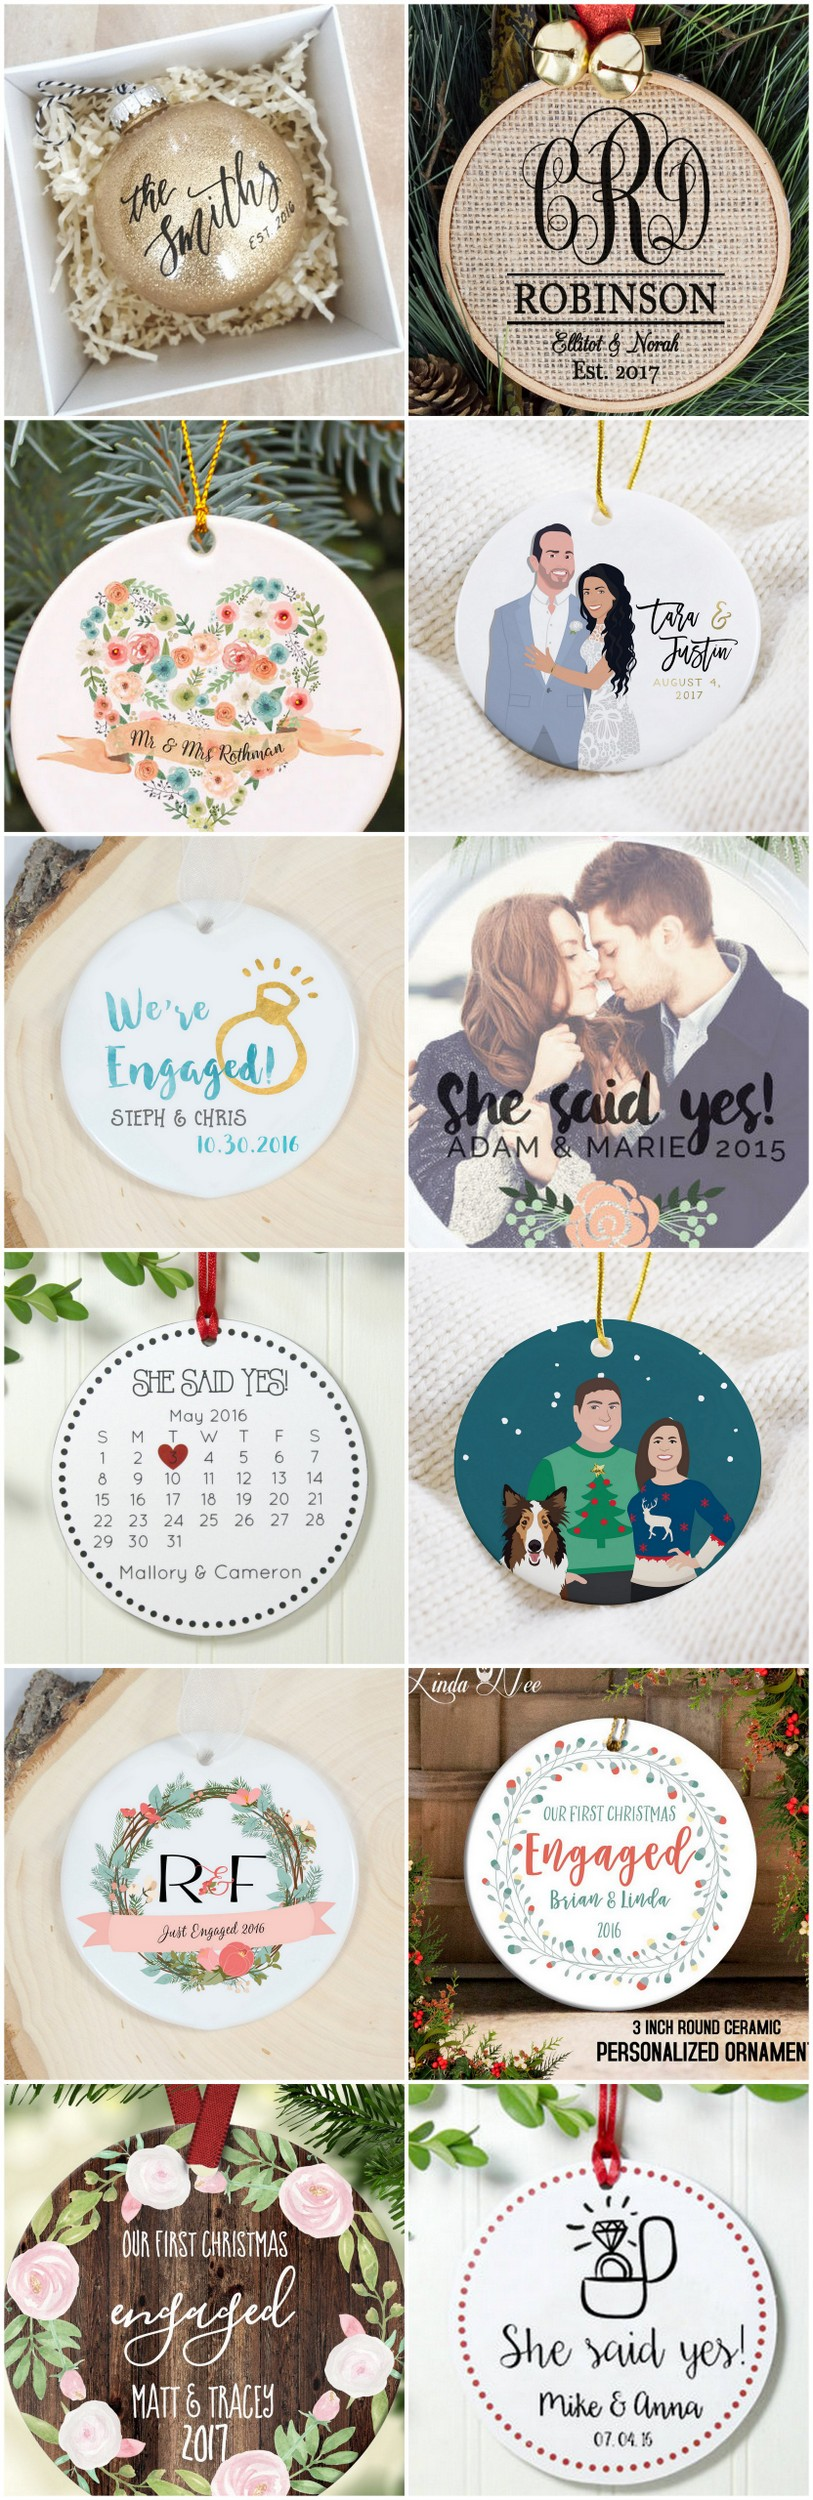 Custom Engaged Ornaments for Christmas Couples